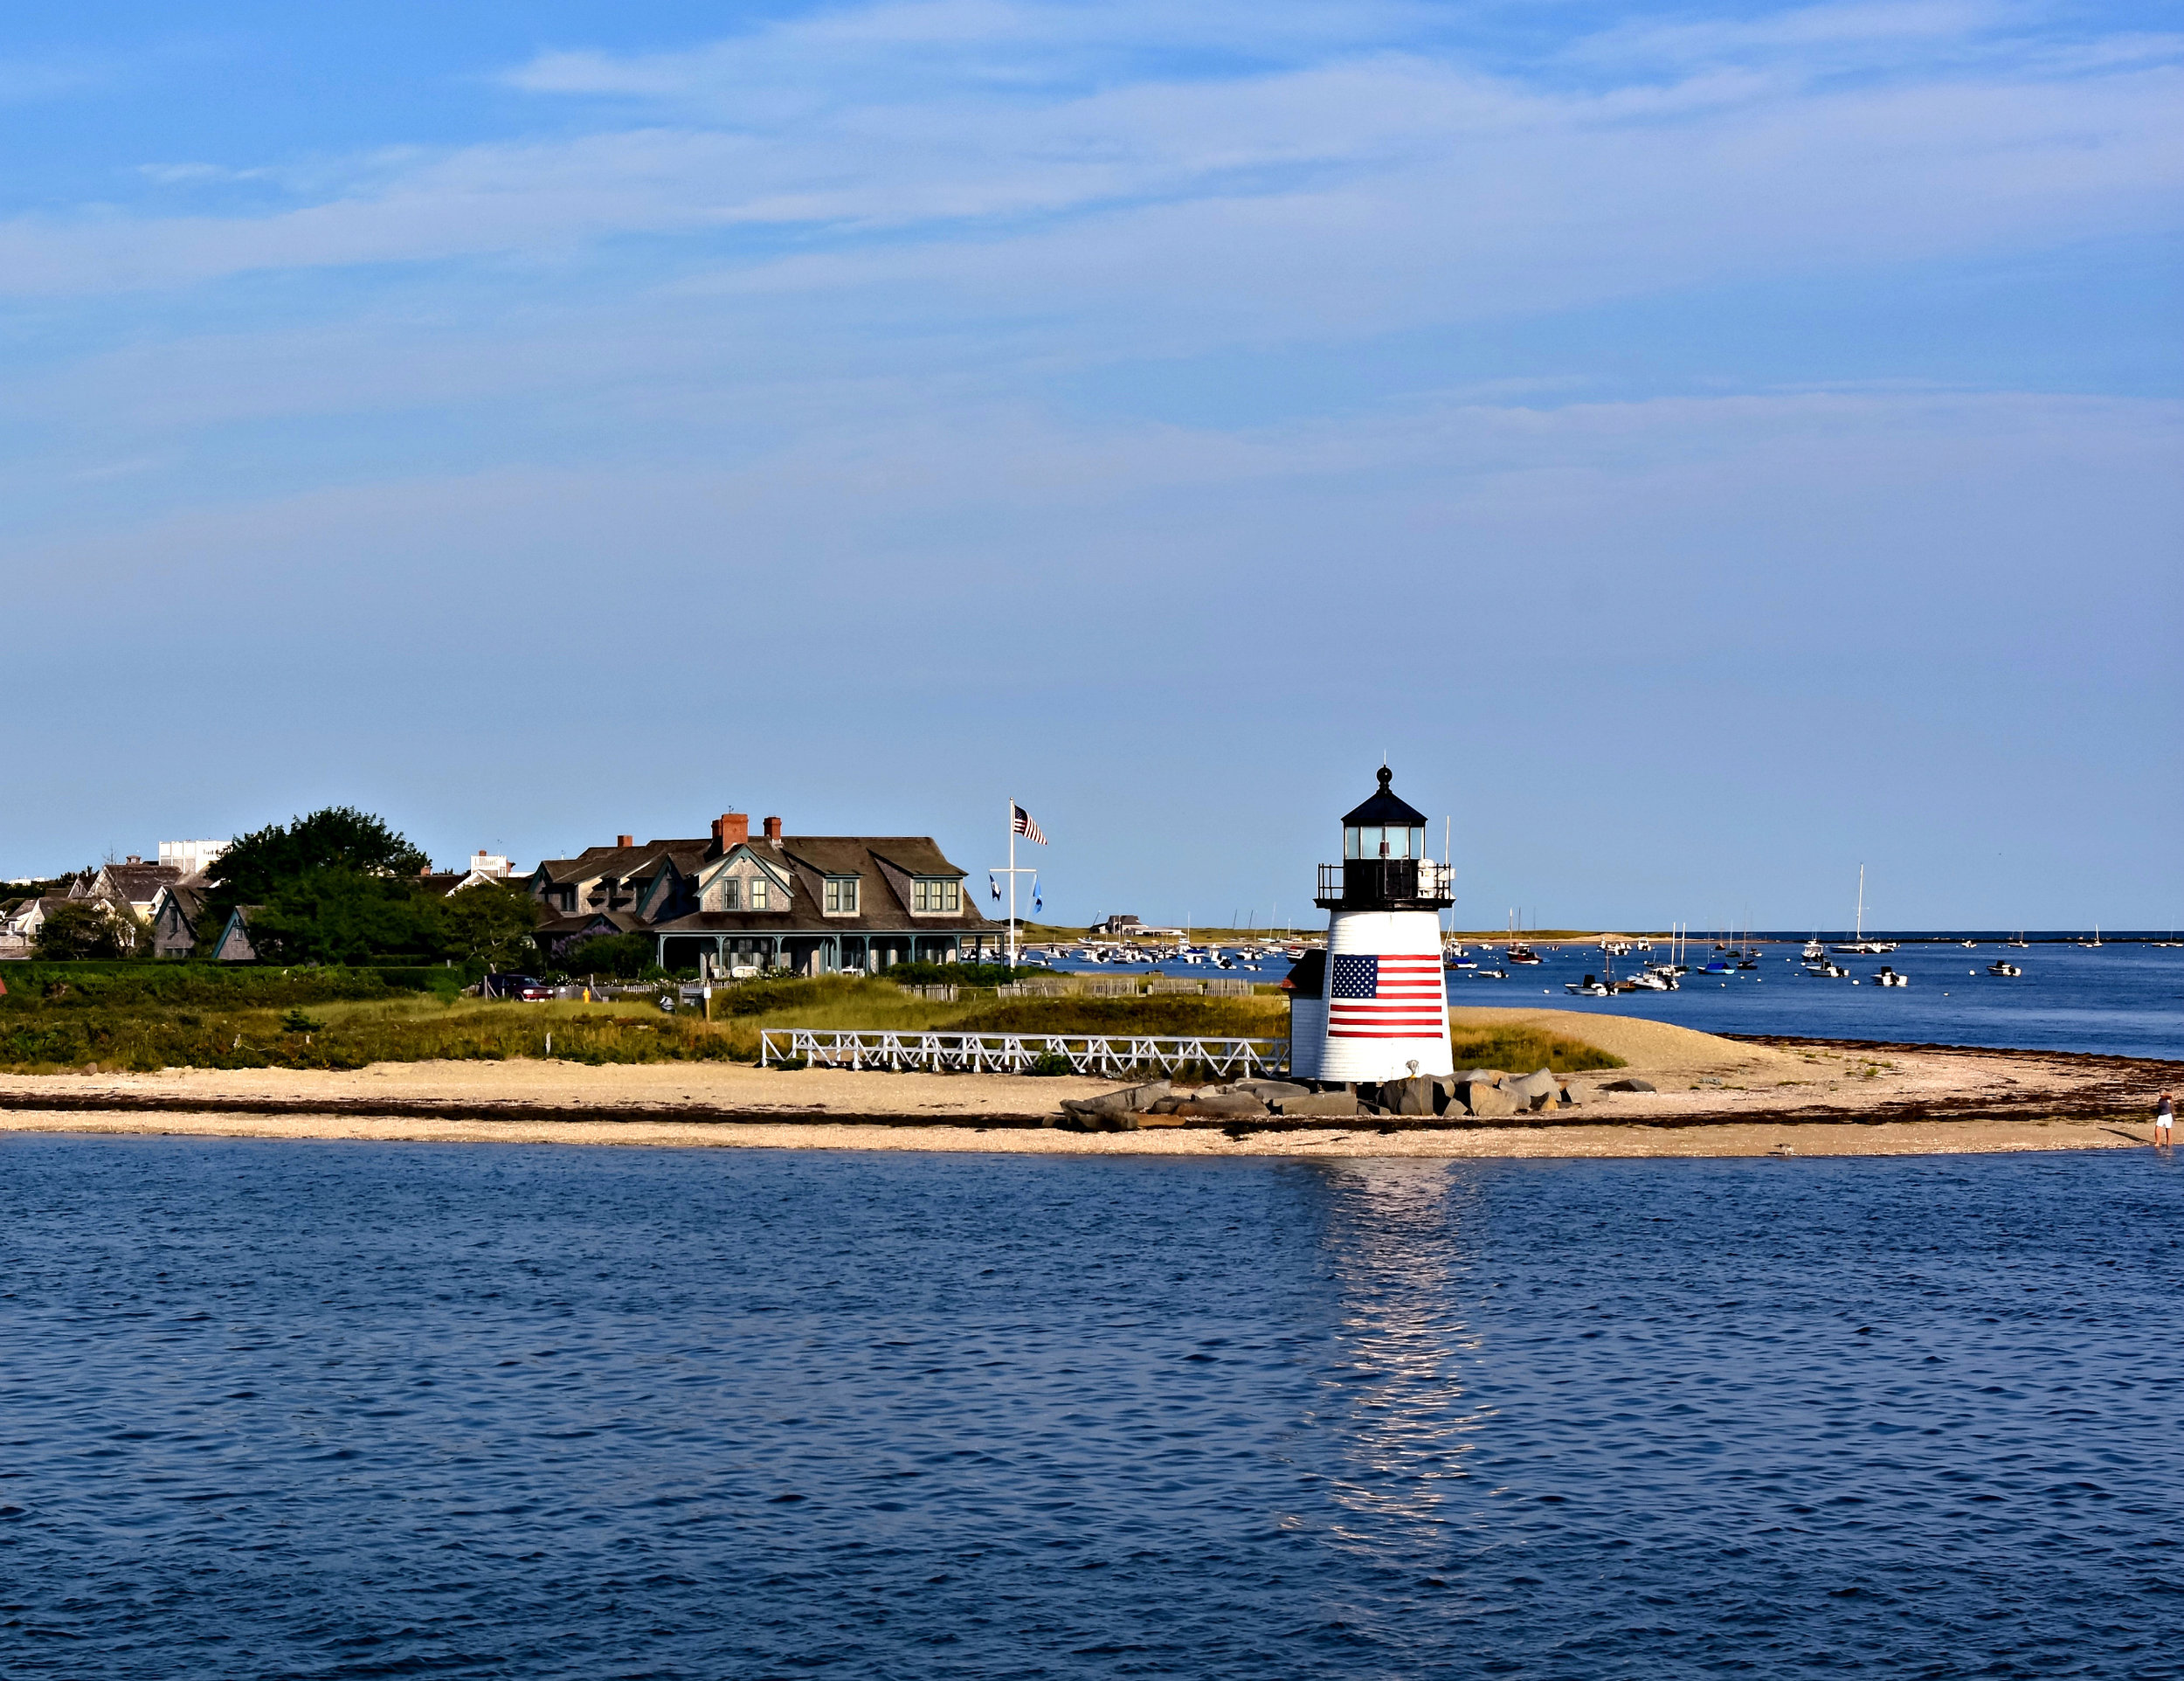 America's second-oldest light station,  Brant Point Light  has been guiding ships into safe harbor since 1746.